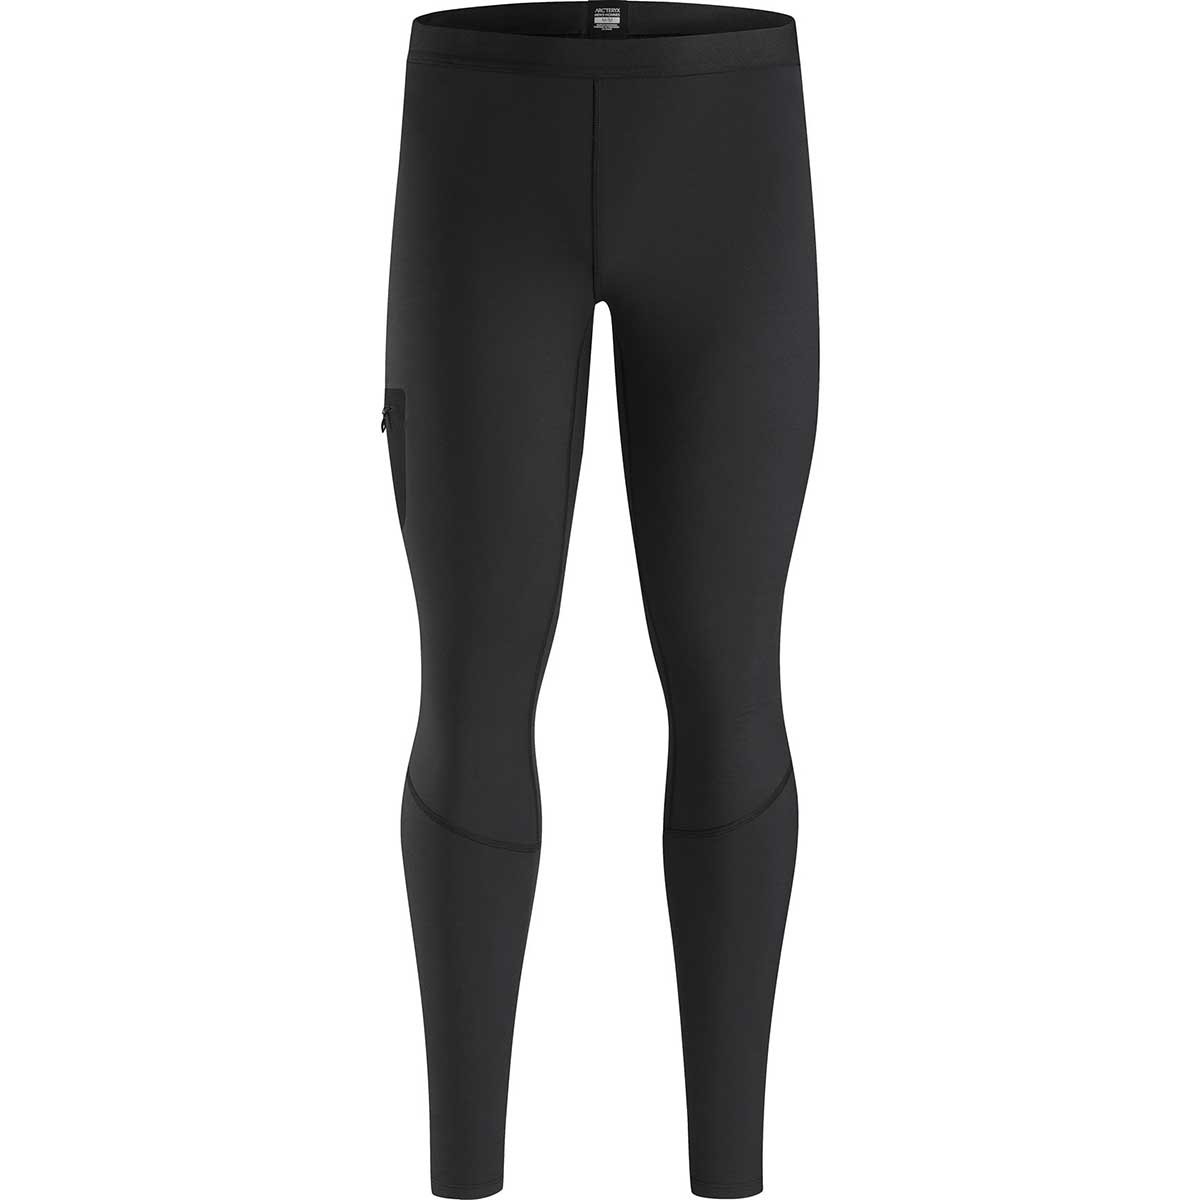 Arcteryx men's RHO Lt Bottom in Black front view